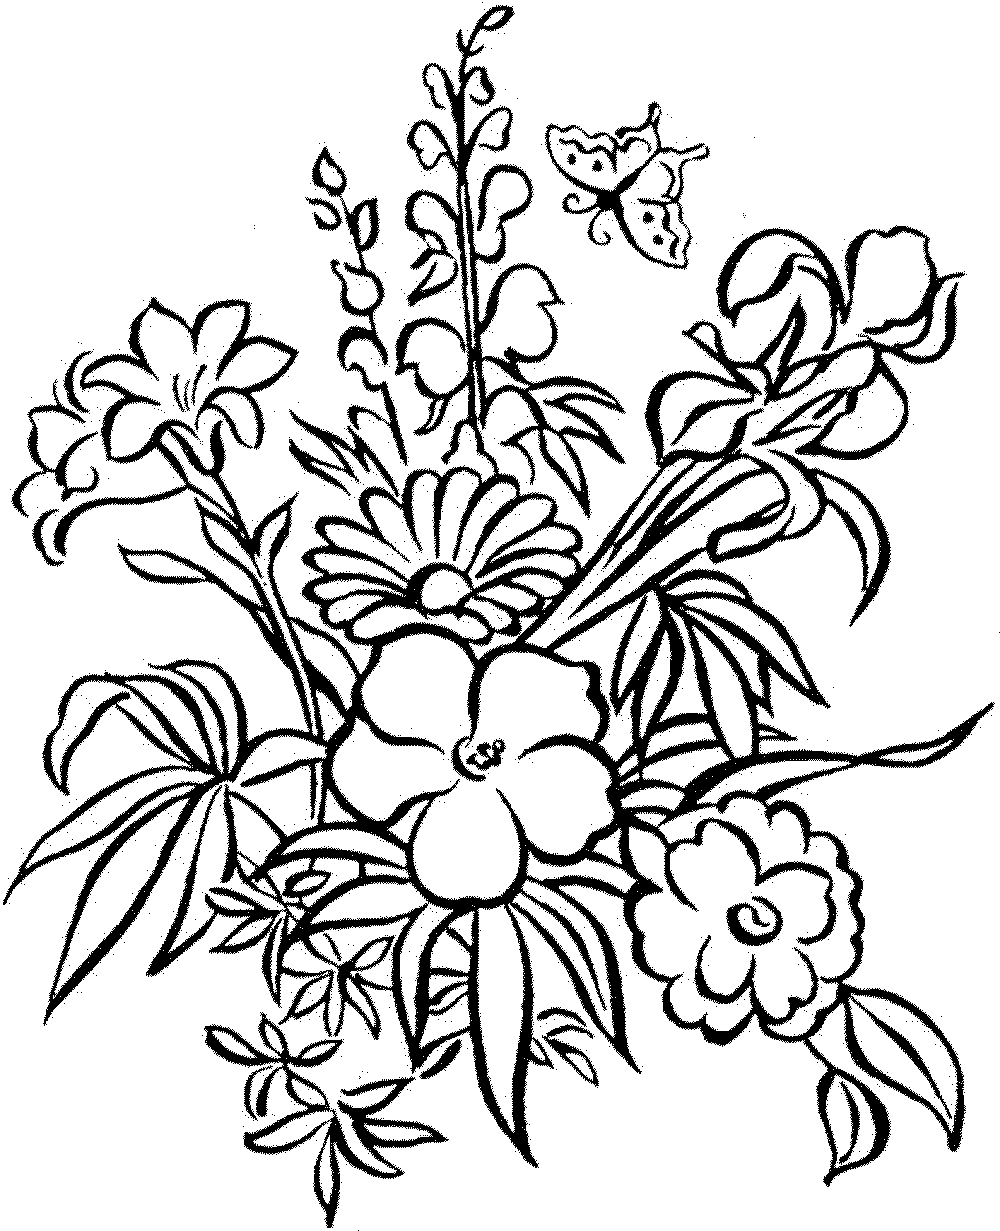 flowers coloring pages printable free easy to print flower coloring pages tulamama flowers printable pages coloring